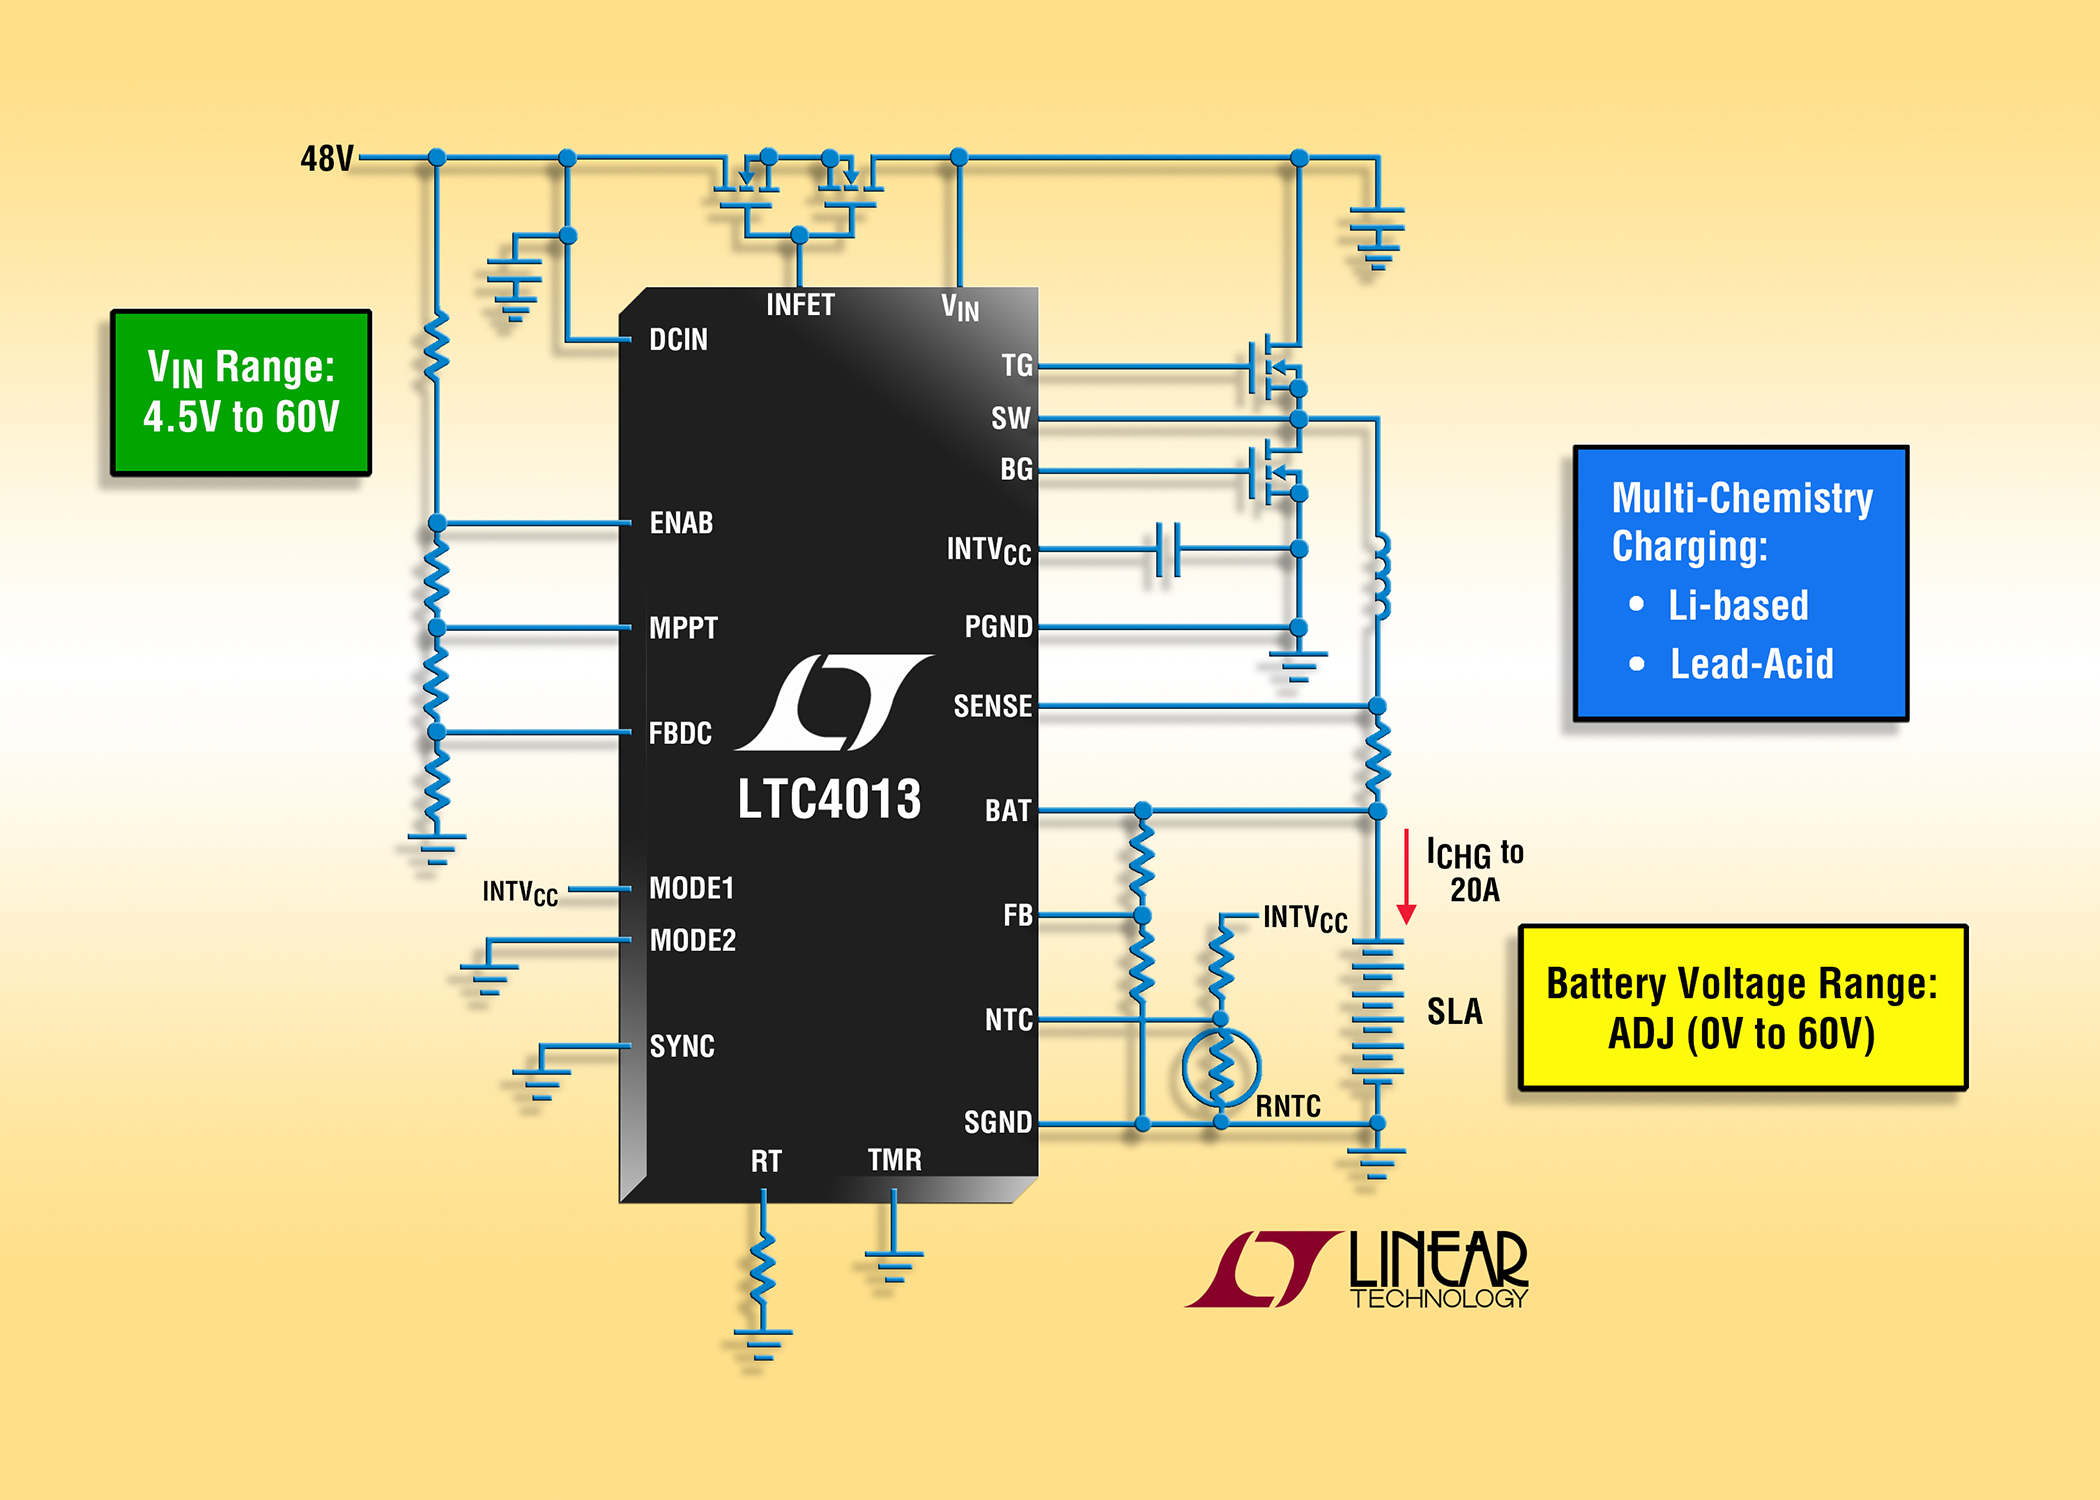 small resolution of 60v synchronous buck battery charger includes lead acid li ion charge algorithms for up to 20a charge current